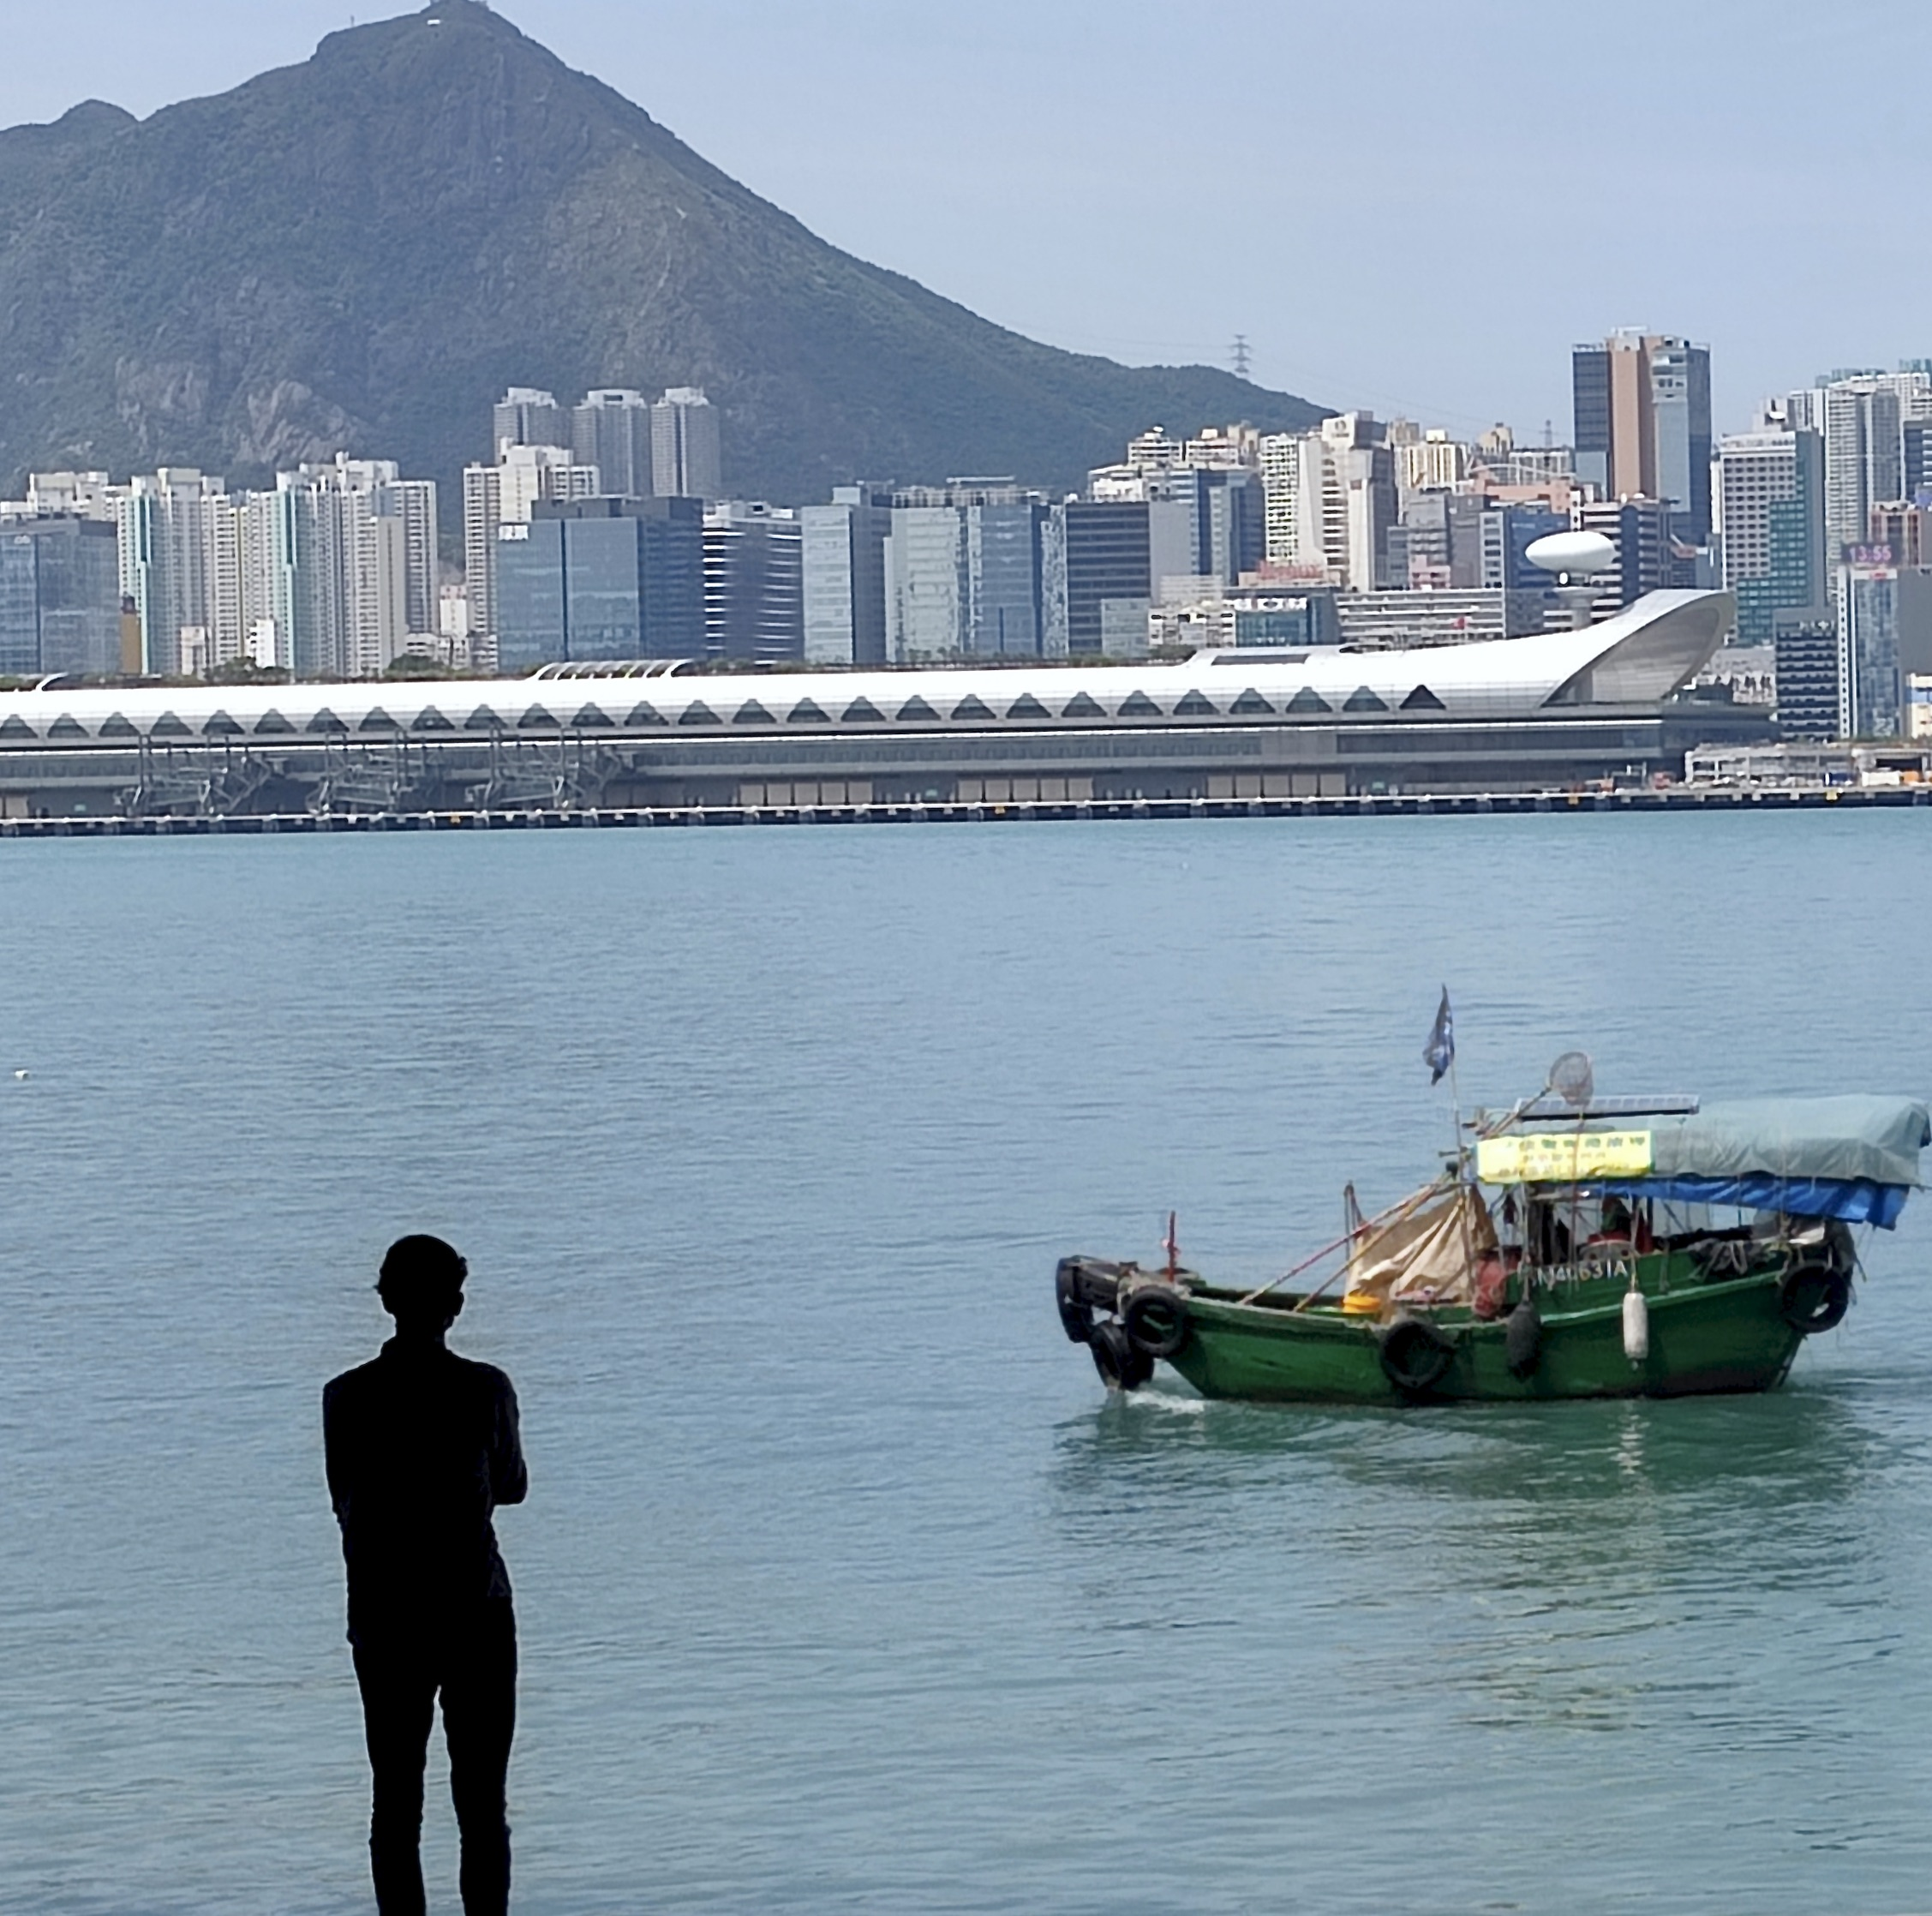 Kai Tak Cruise Terminal with fishing boat and figure in foreground